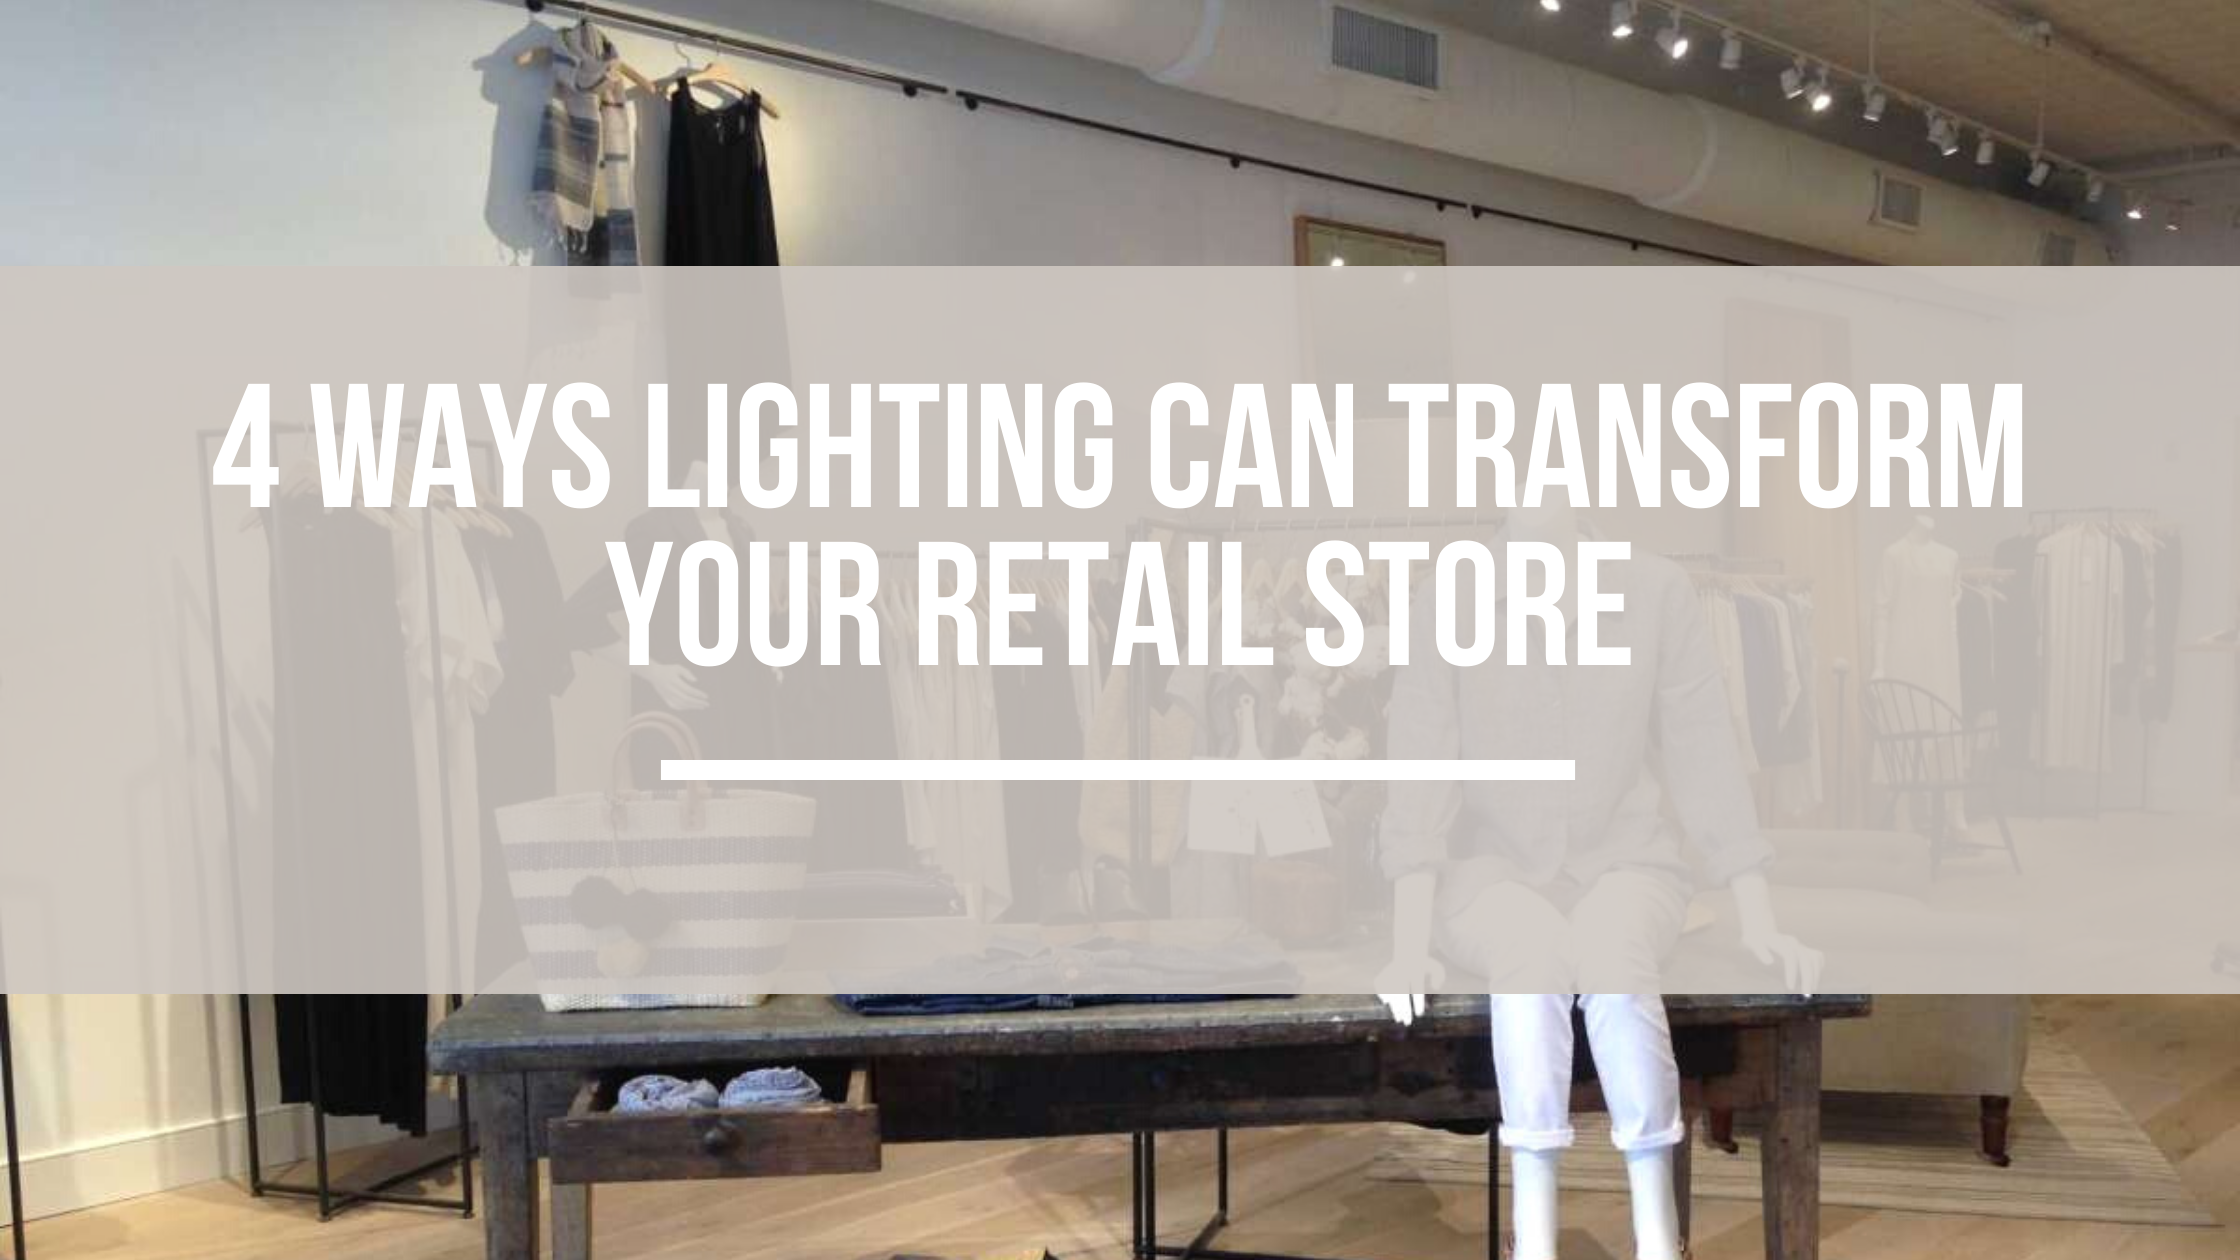 4 Ways Lighting Can Transform Your Retail Store